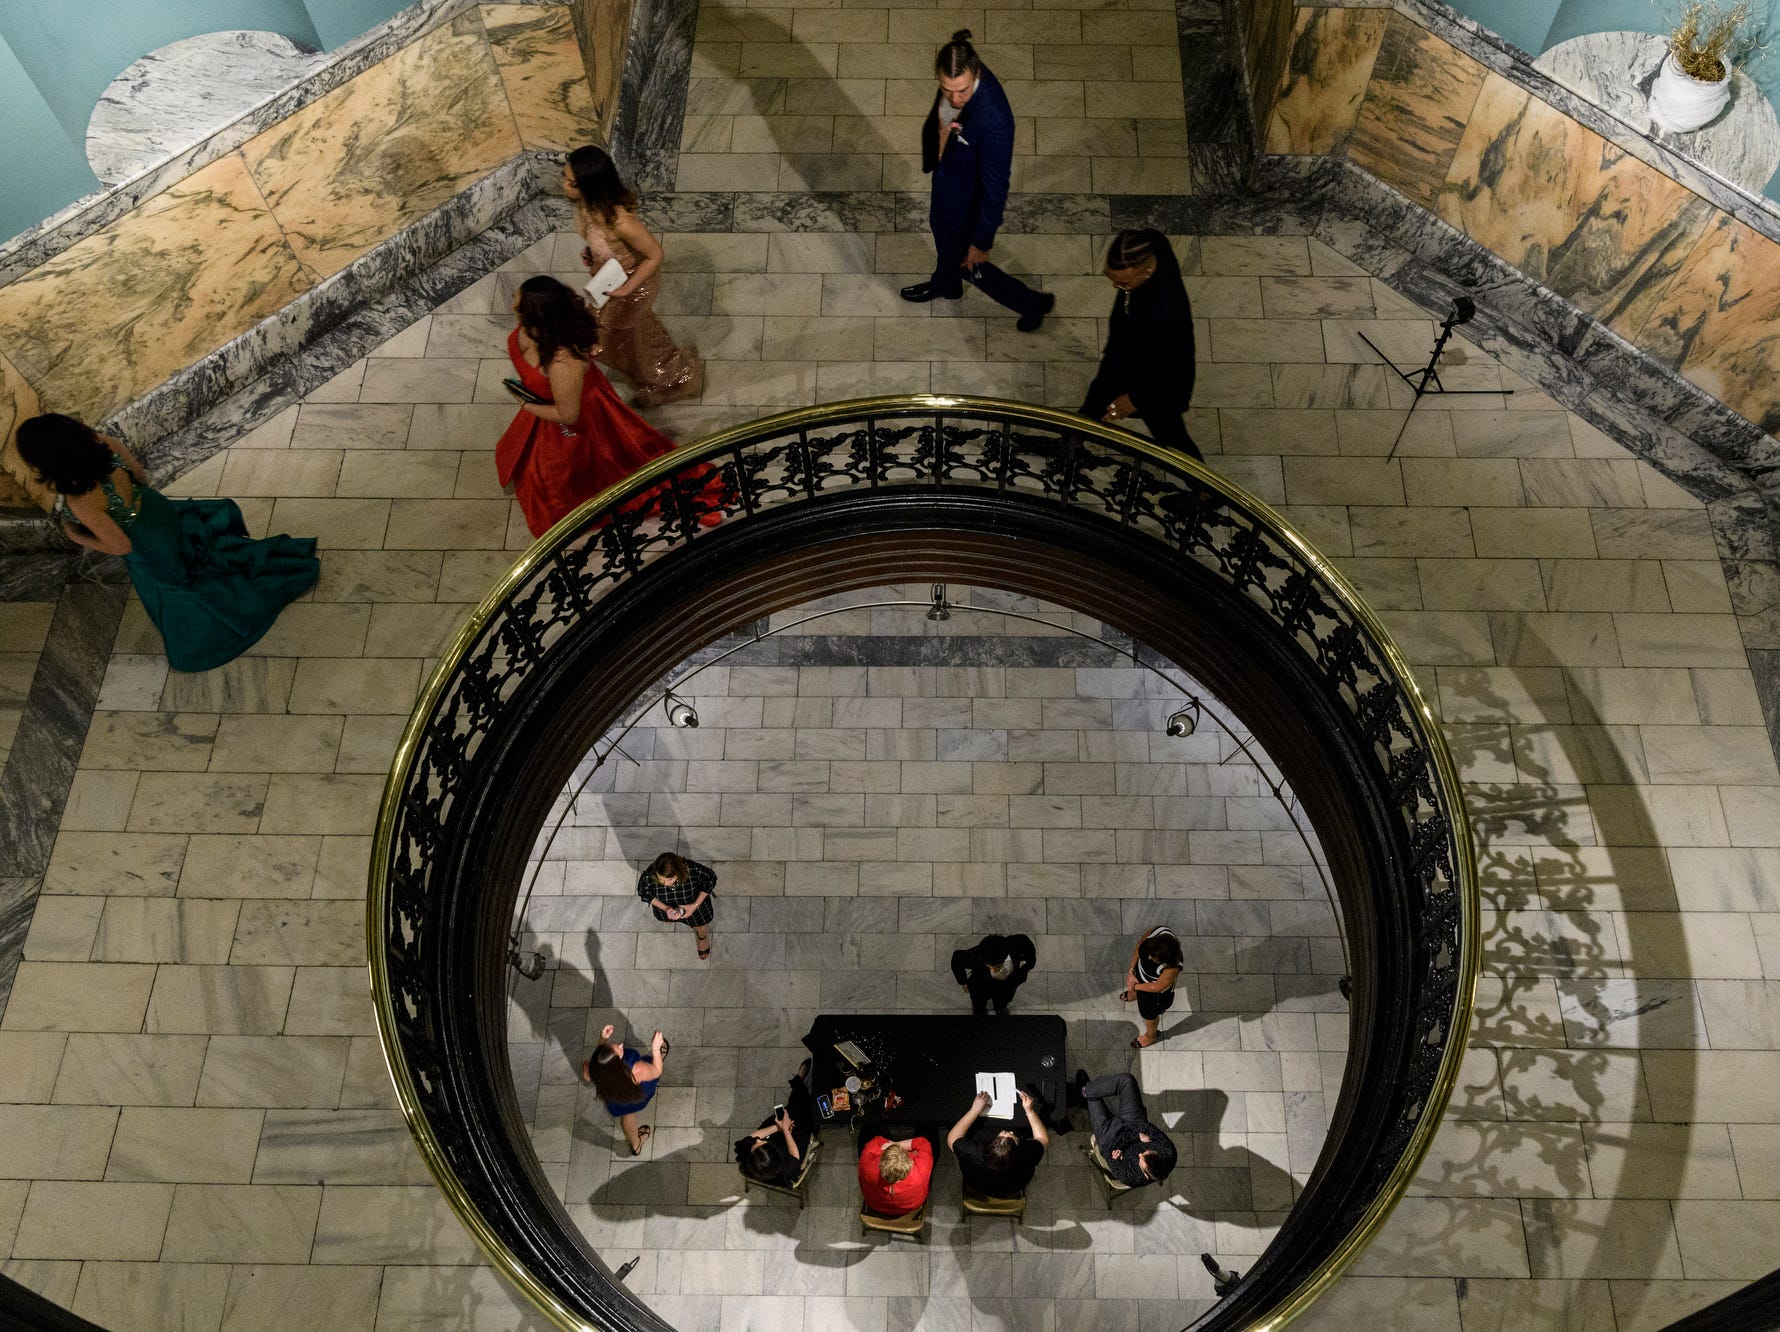 Bosse High School students check-in and then head up to the second floor to begin dancing the night away at prom inside the Old Vanderburgh County Courthouse in downtown Evansville, Ind., Saturday, April 6, 2019.